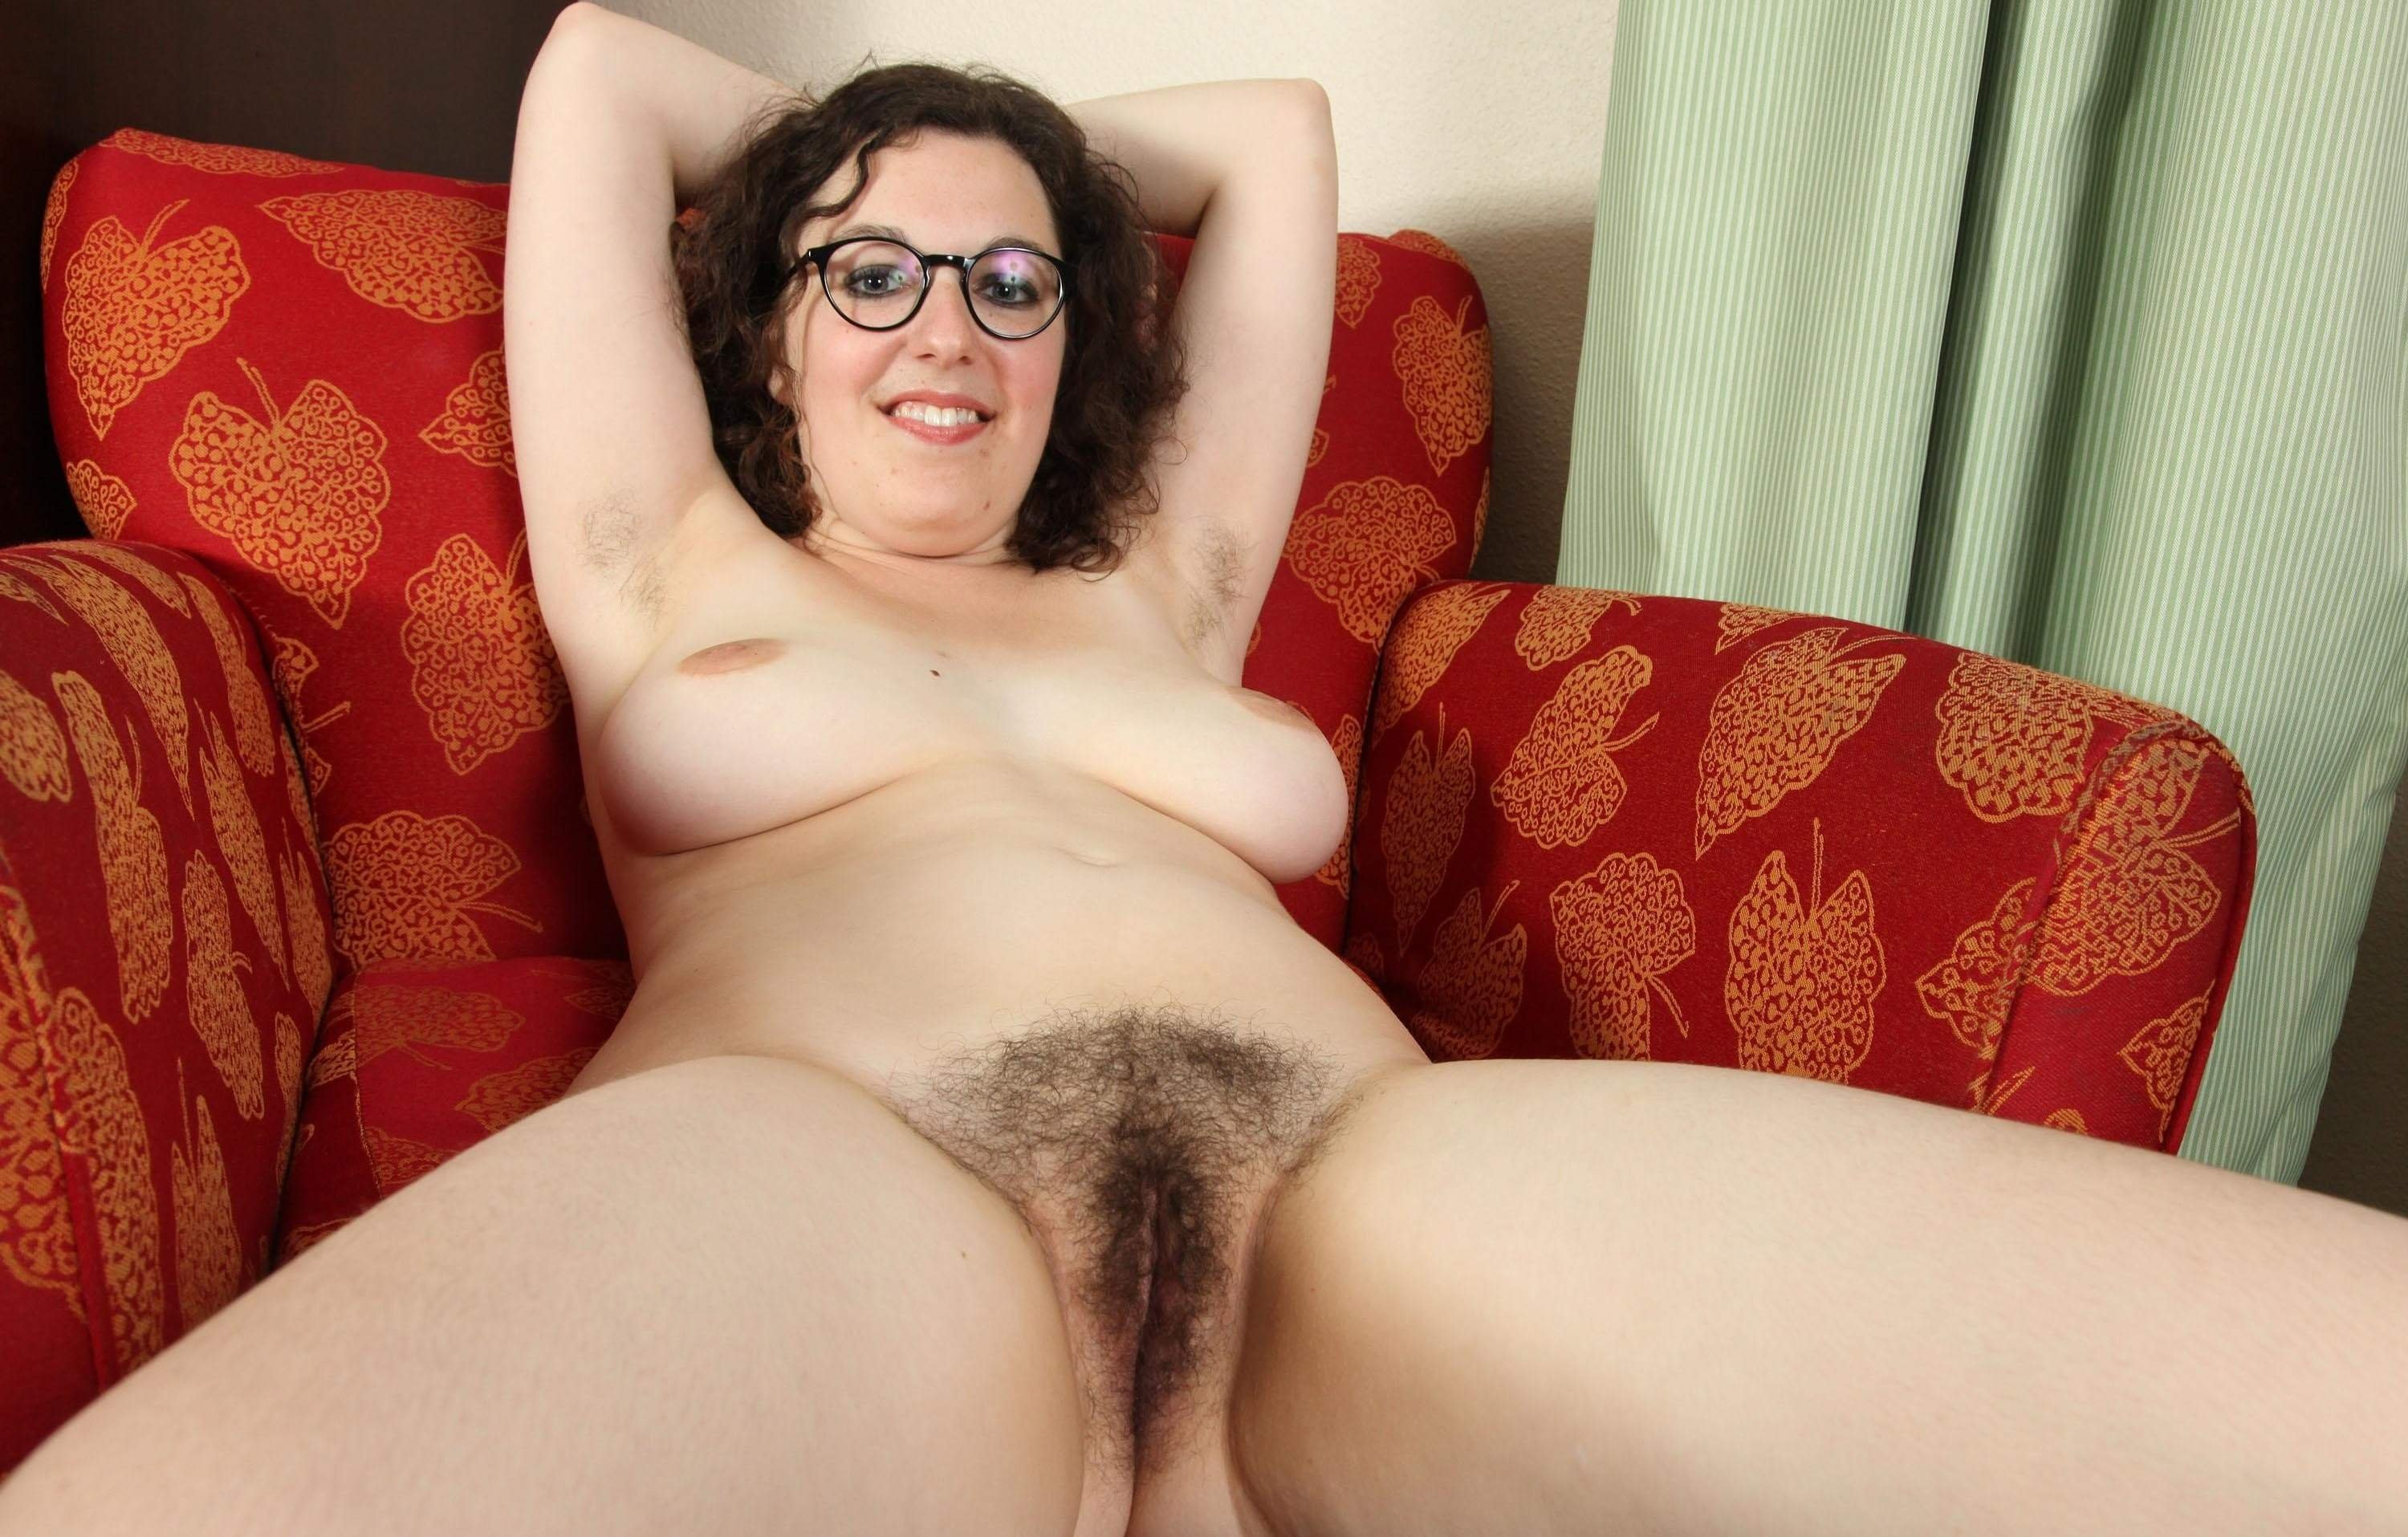 Black hairy pussy clips and also porn girls with glasses black model sexy